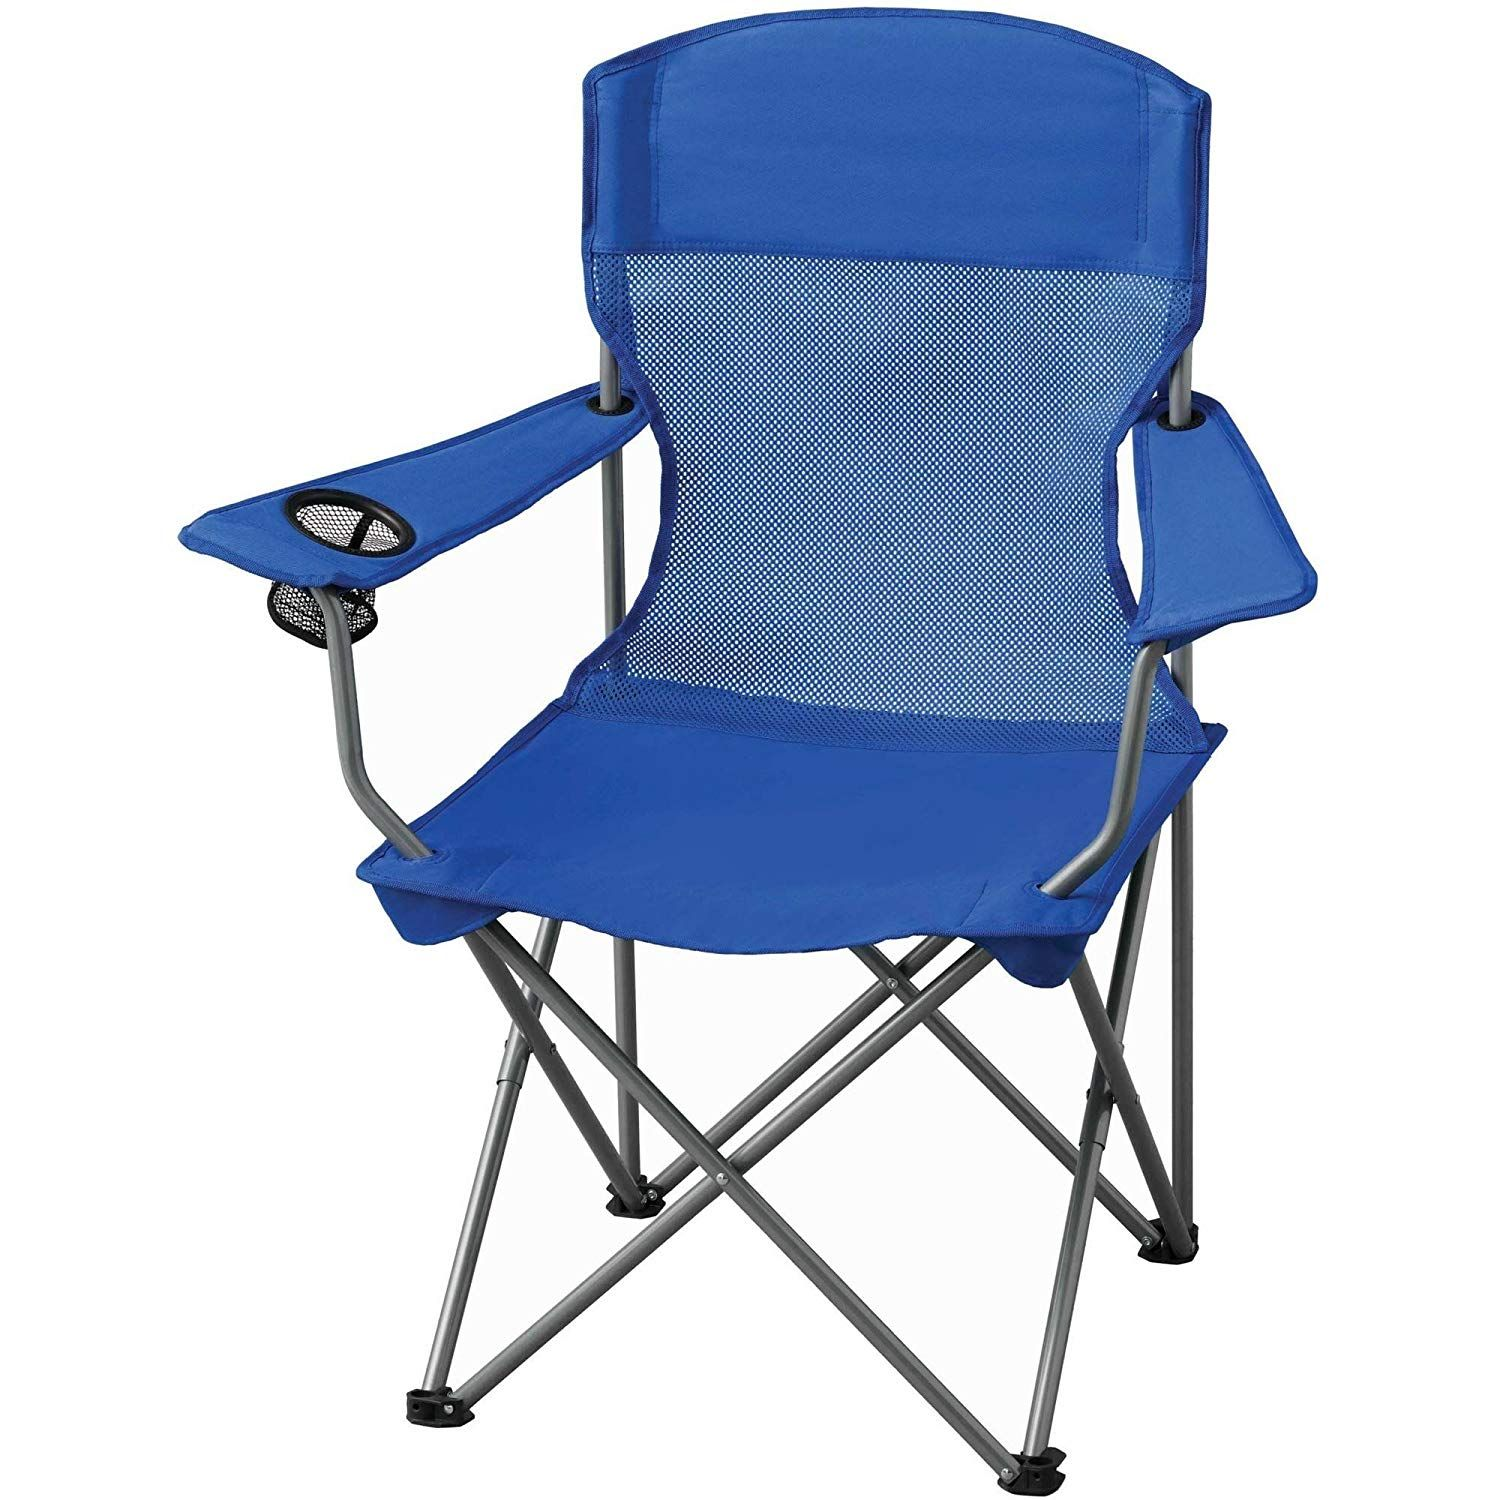 Youth Folding Chair Eddie Bauer Rocking Ozark Trail For All Outdoor Activities See The Photo Link Even More Details This Is An Affiliate Camping Furniture